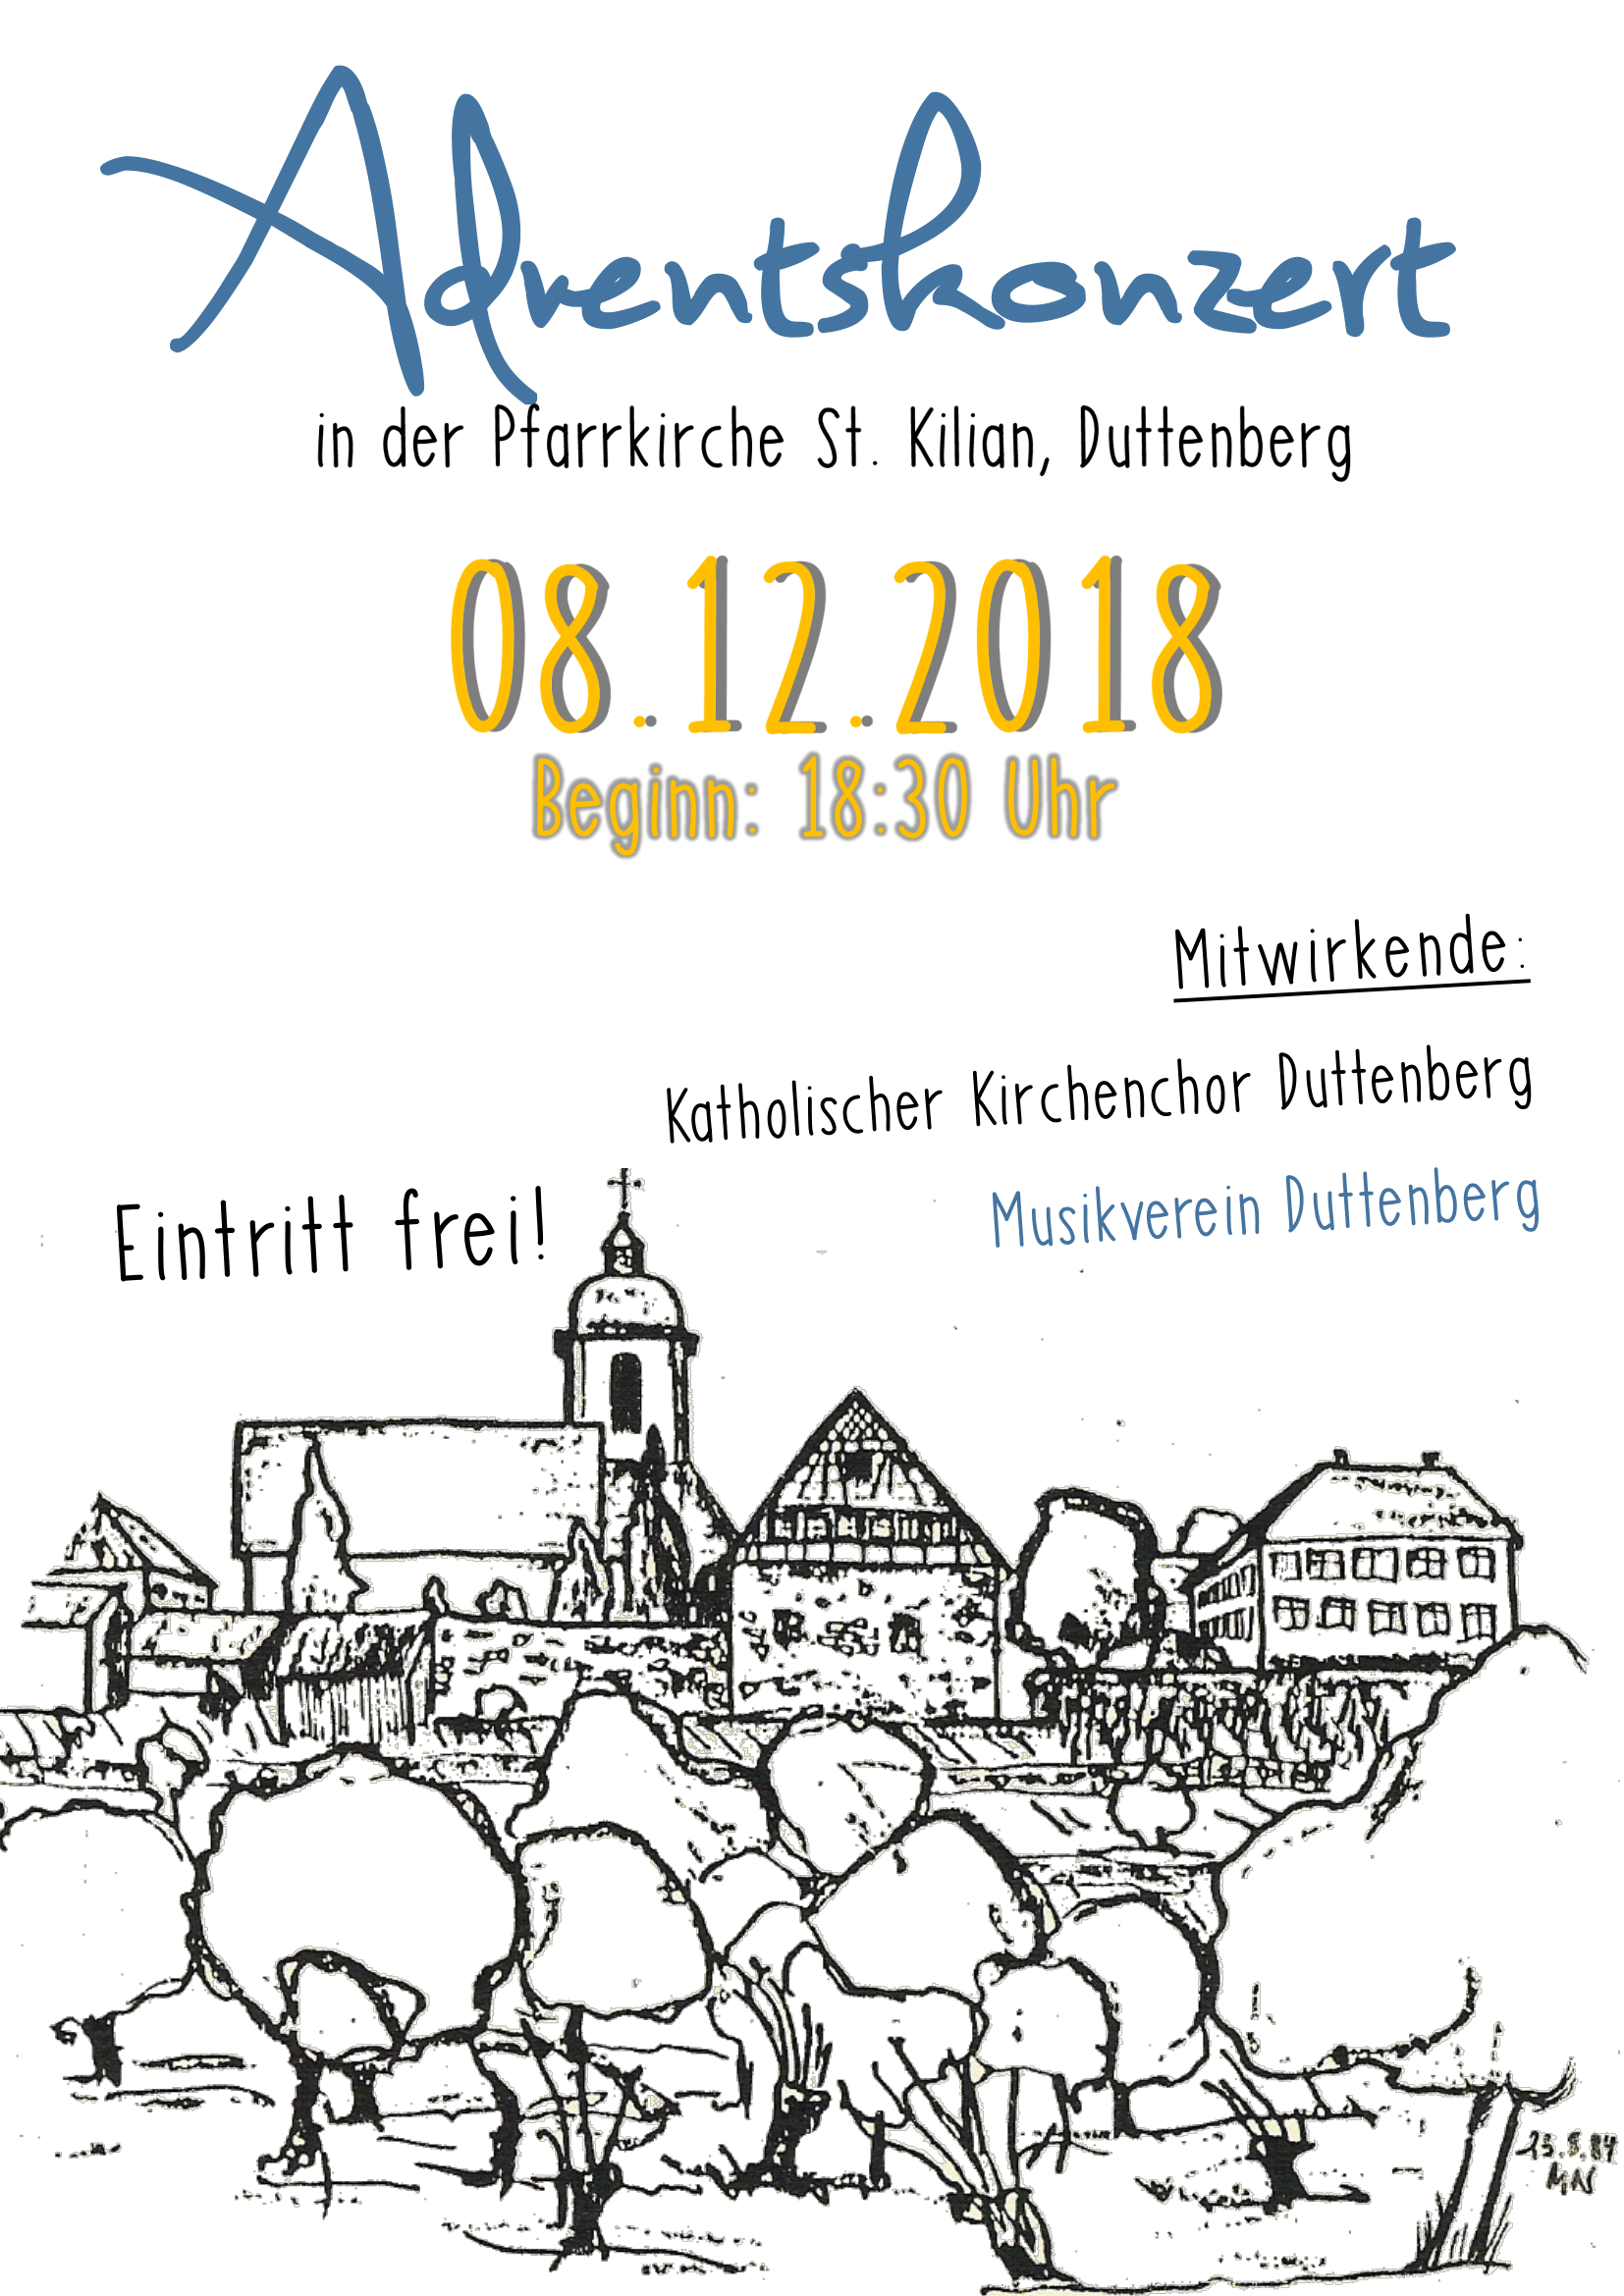 2018 Kirchenkonzert Flyer